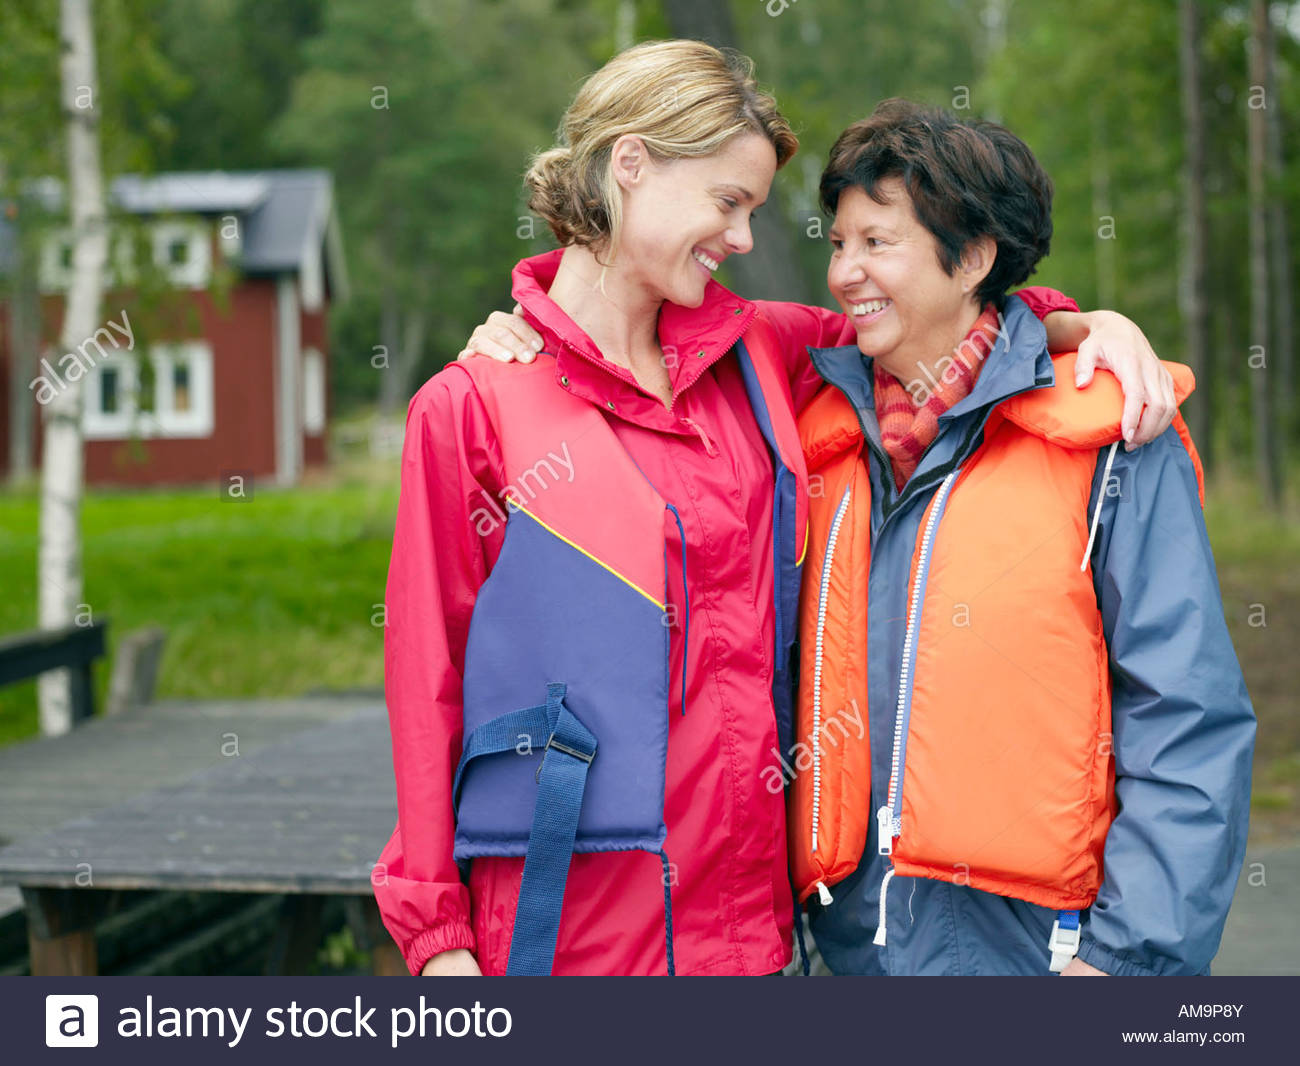 Two women standing together smiling with house in background. - Stock Image